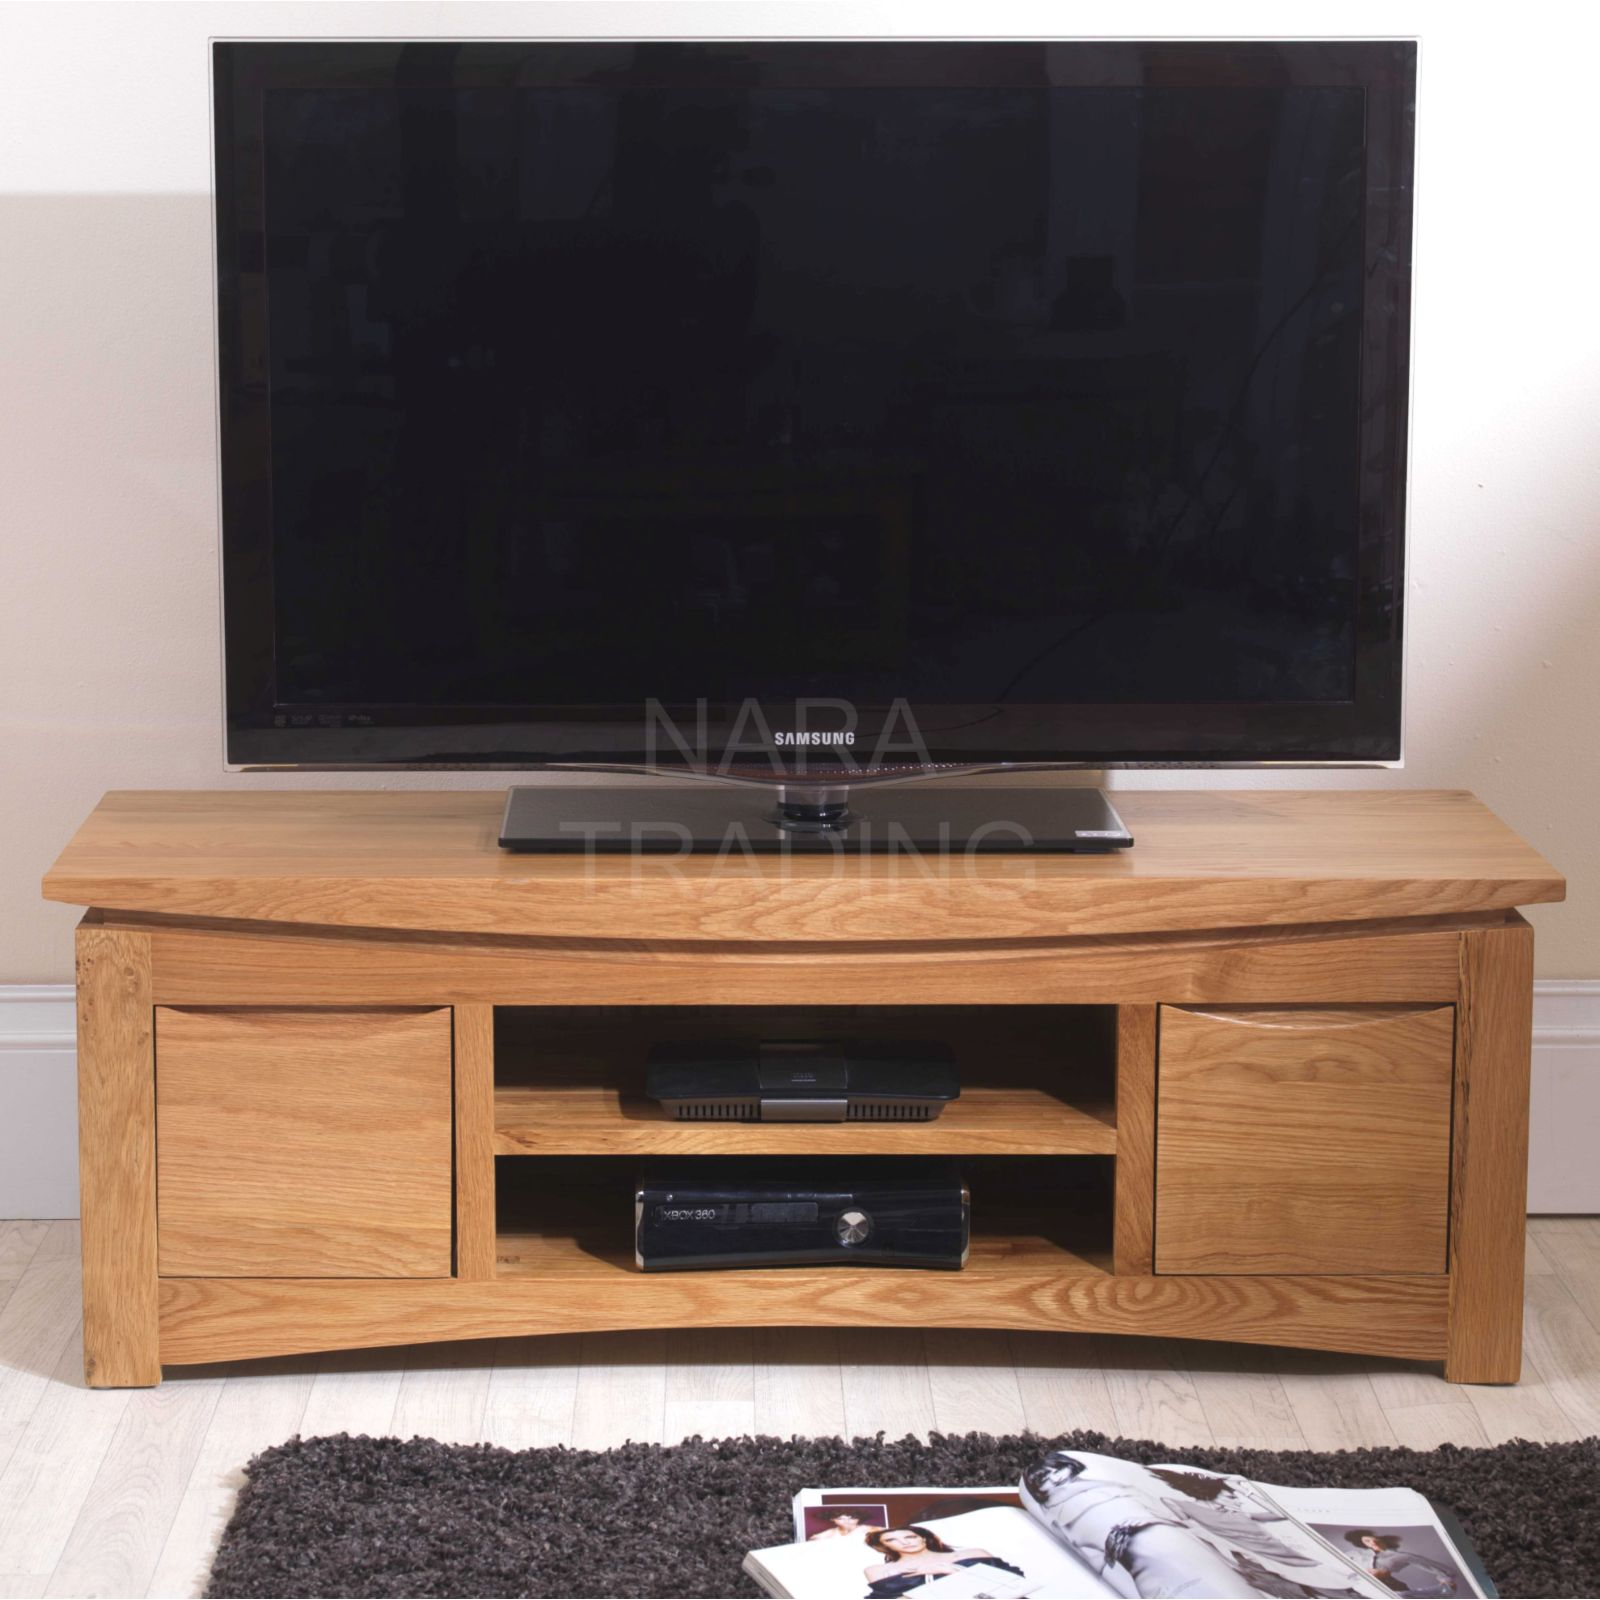 Crescent solid oak furniture widescreen tv dvd cabinet for Tv media storage cabinet